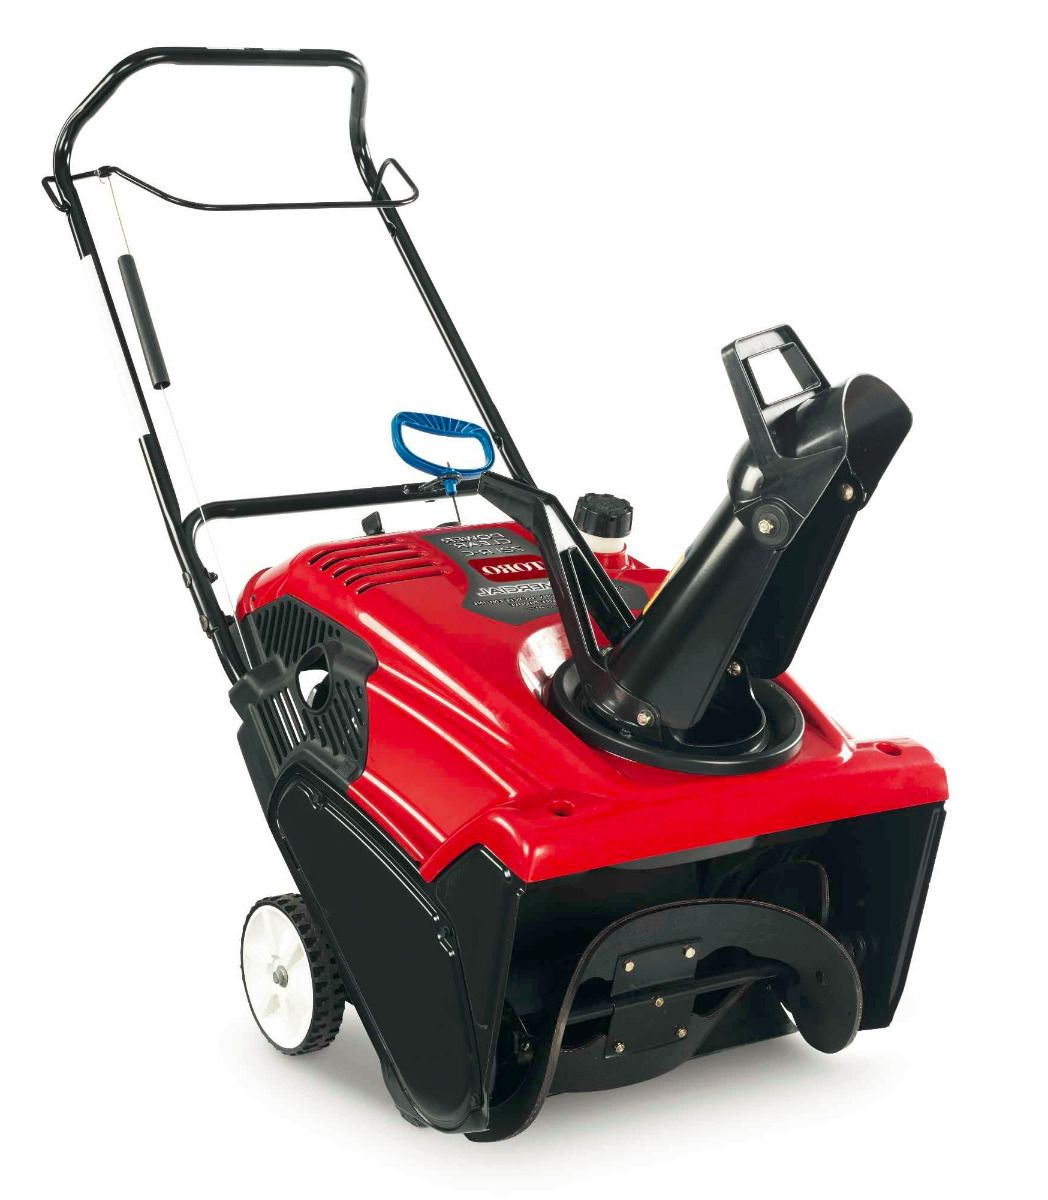 Toro 38754 Power Clear 721 R-C Single-Stage Recoil Start Snowthrower